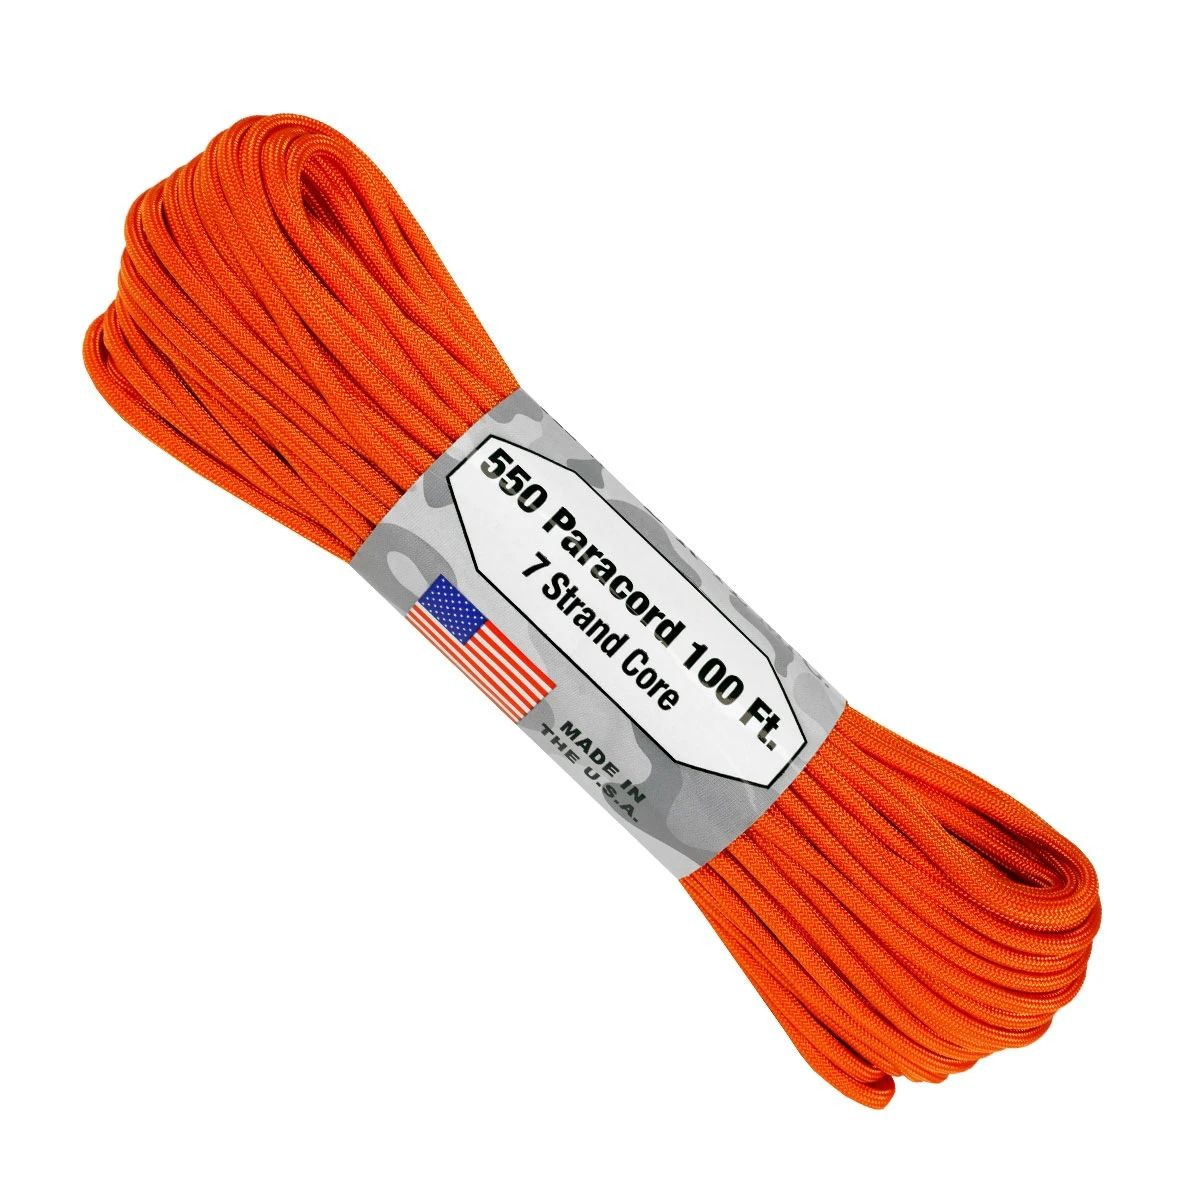 550 Paracord - 100ft - Burnt Orange - Made in USA